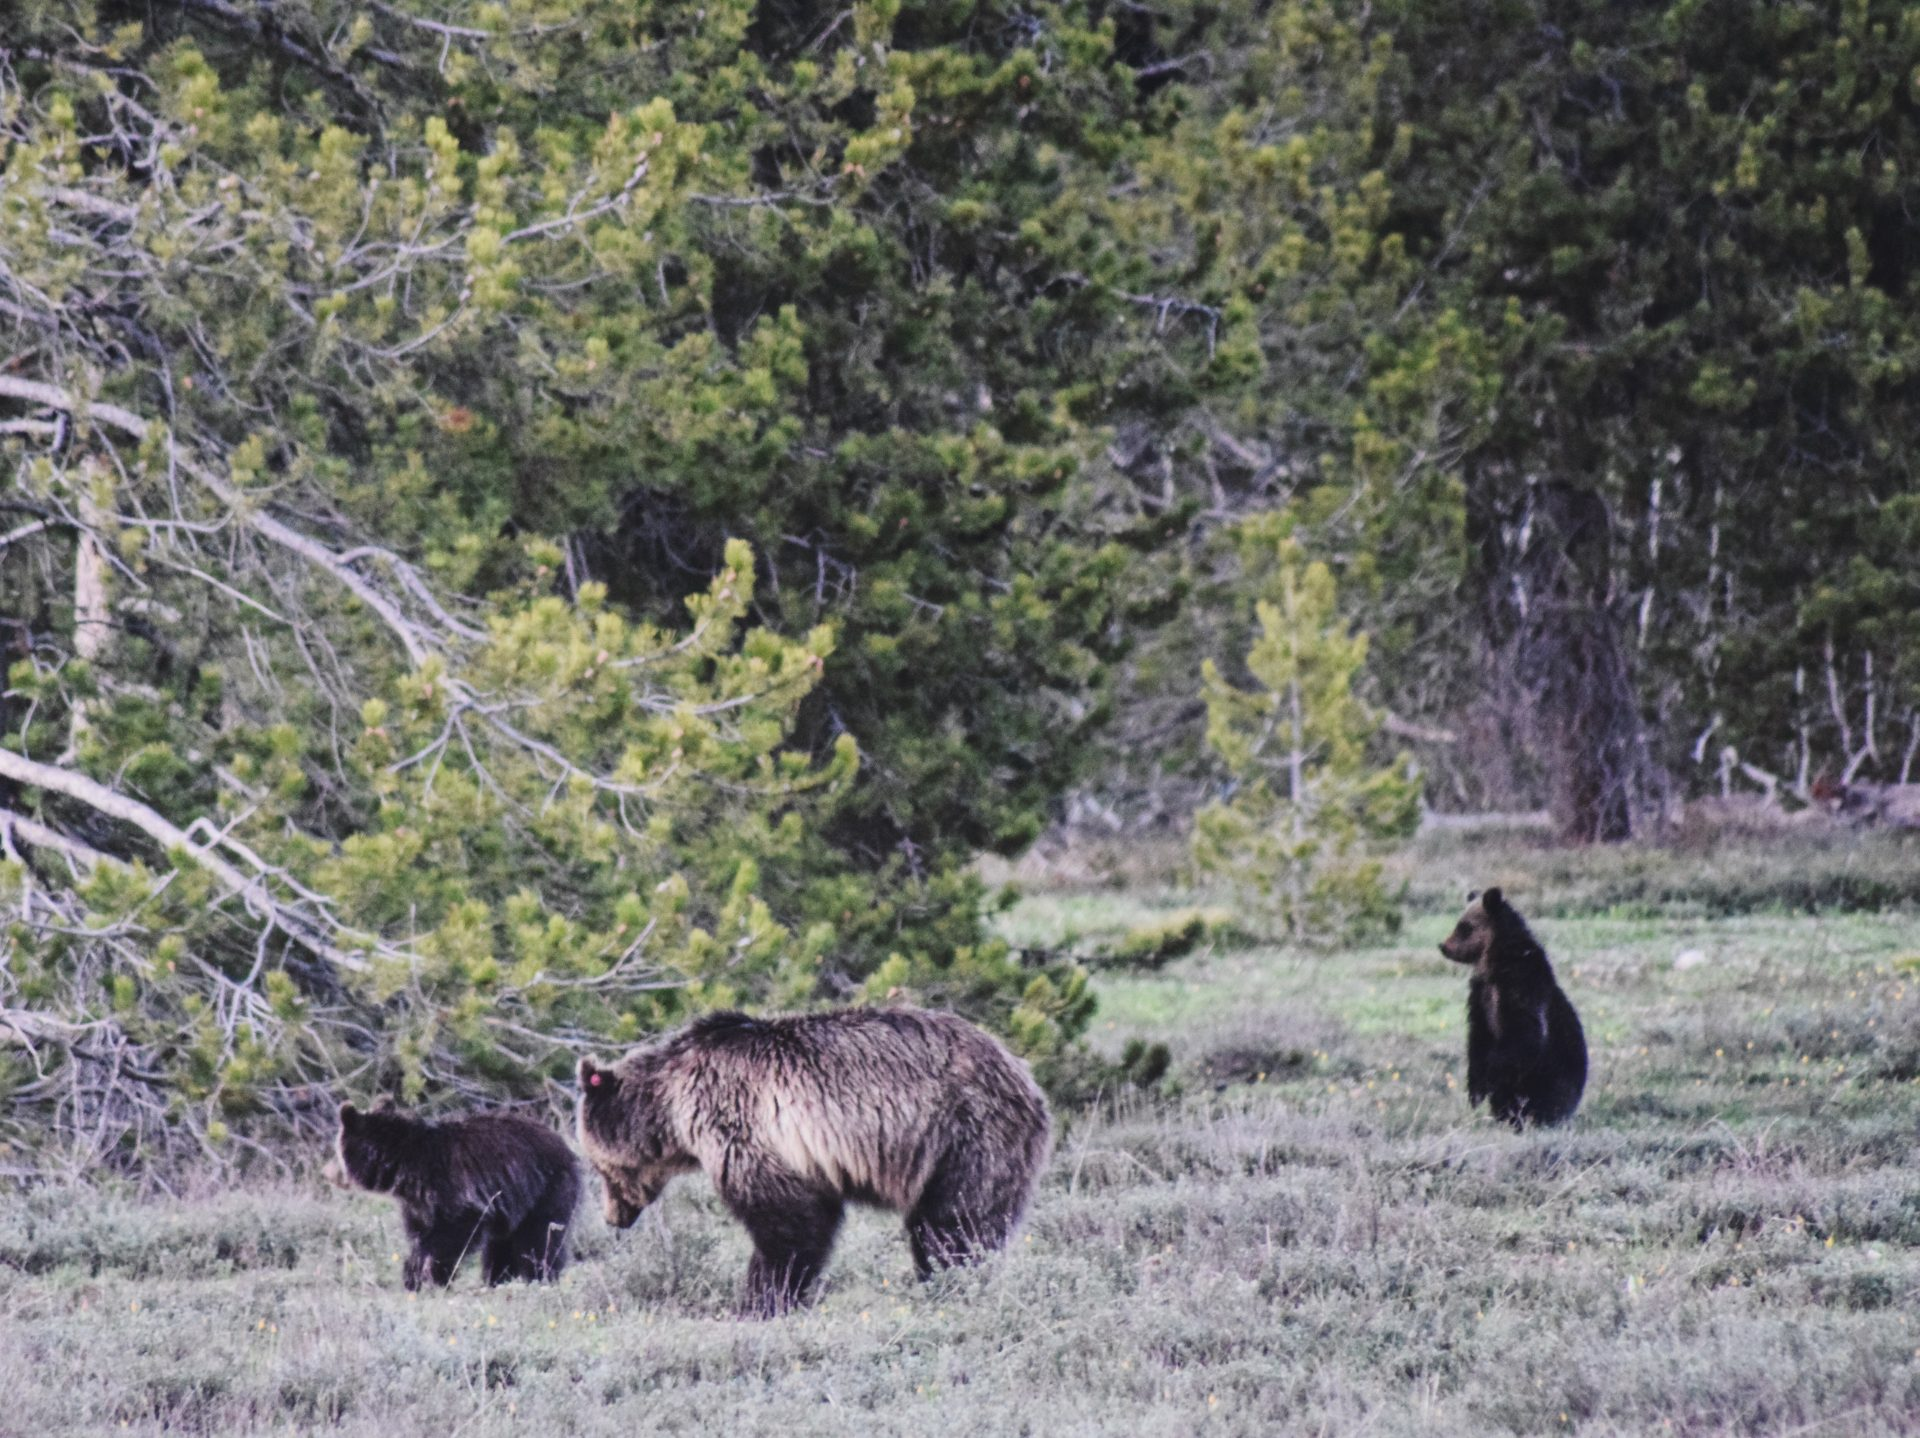 A mama bear and her two cubs in a sagebrush outcropping next to pine trees